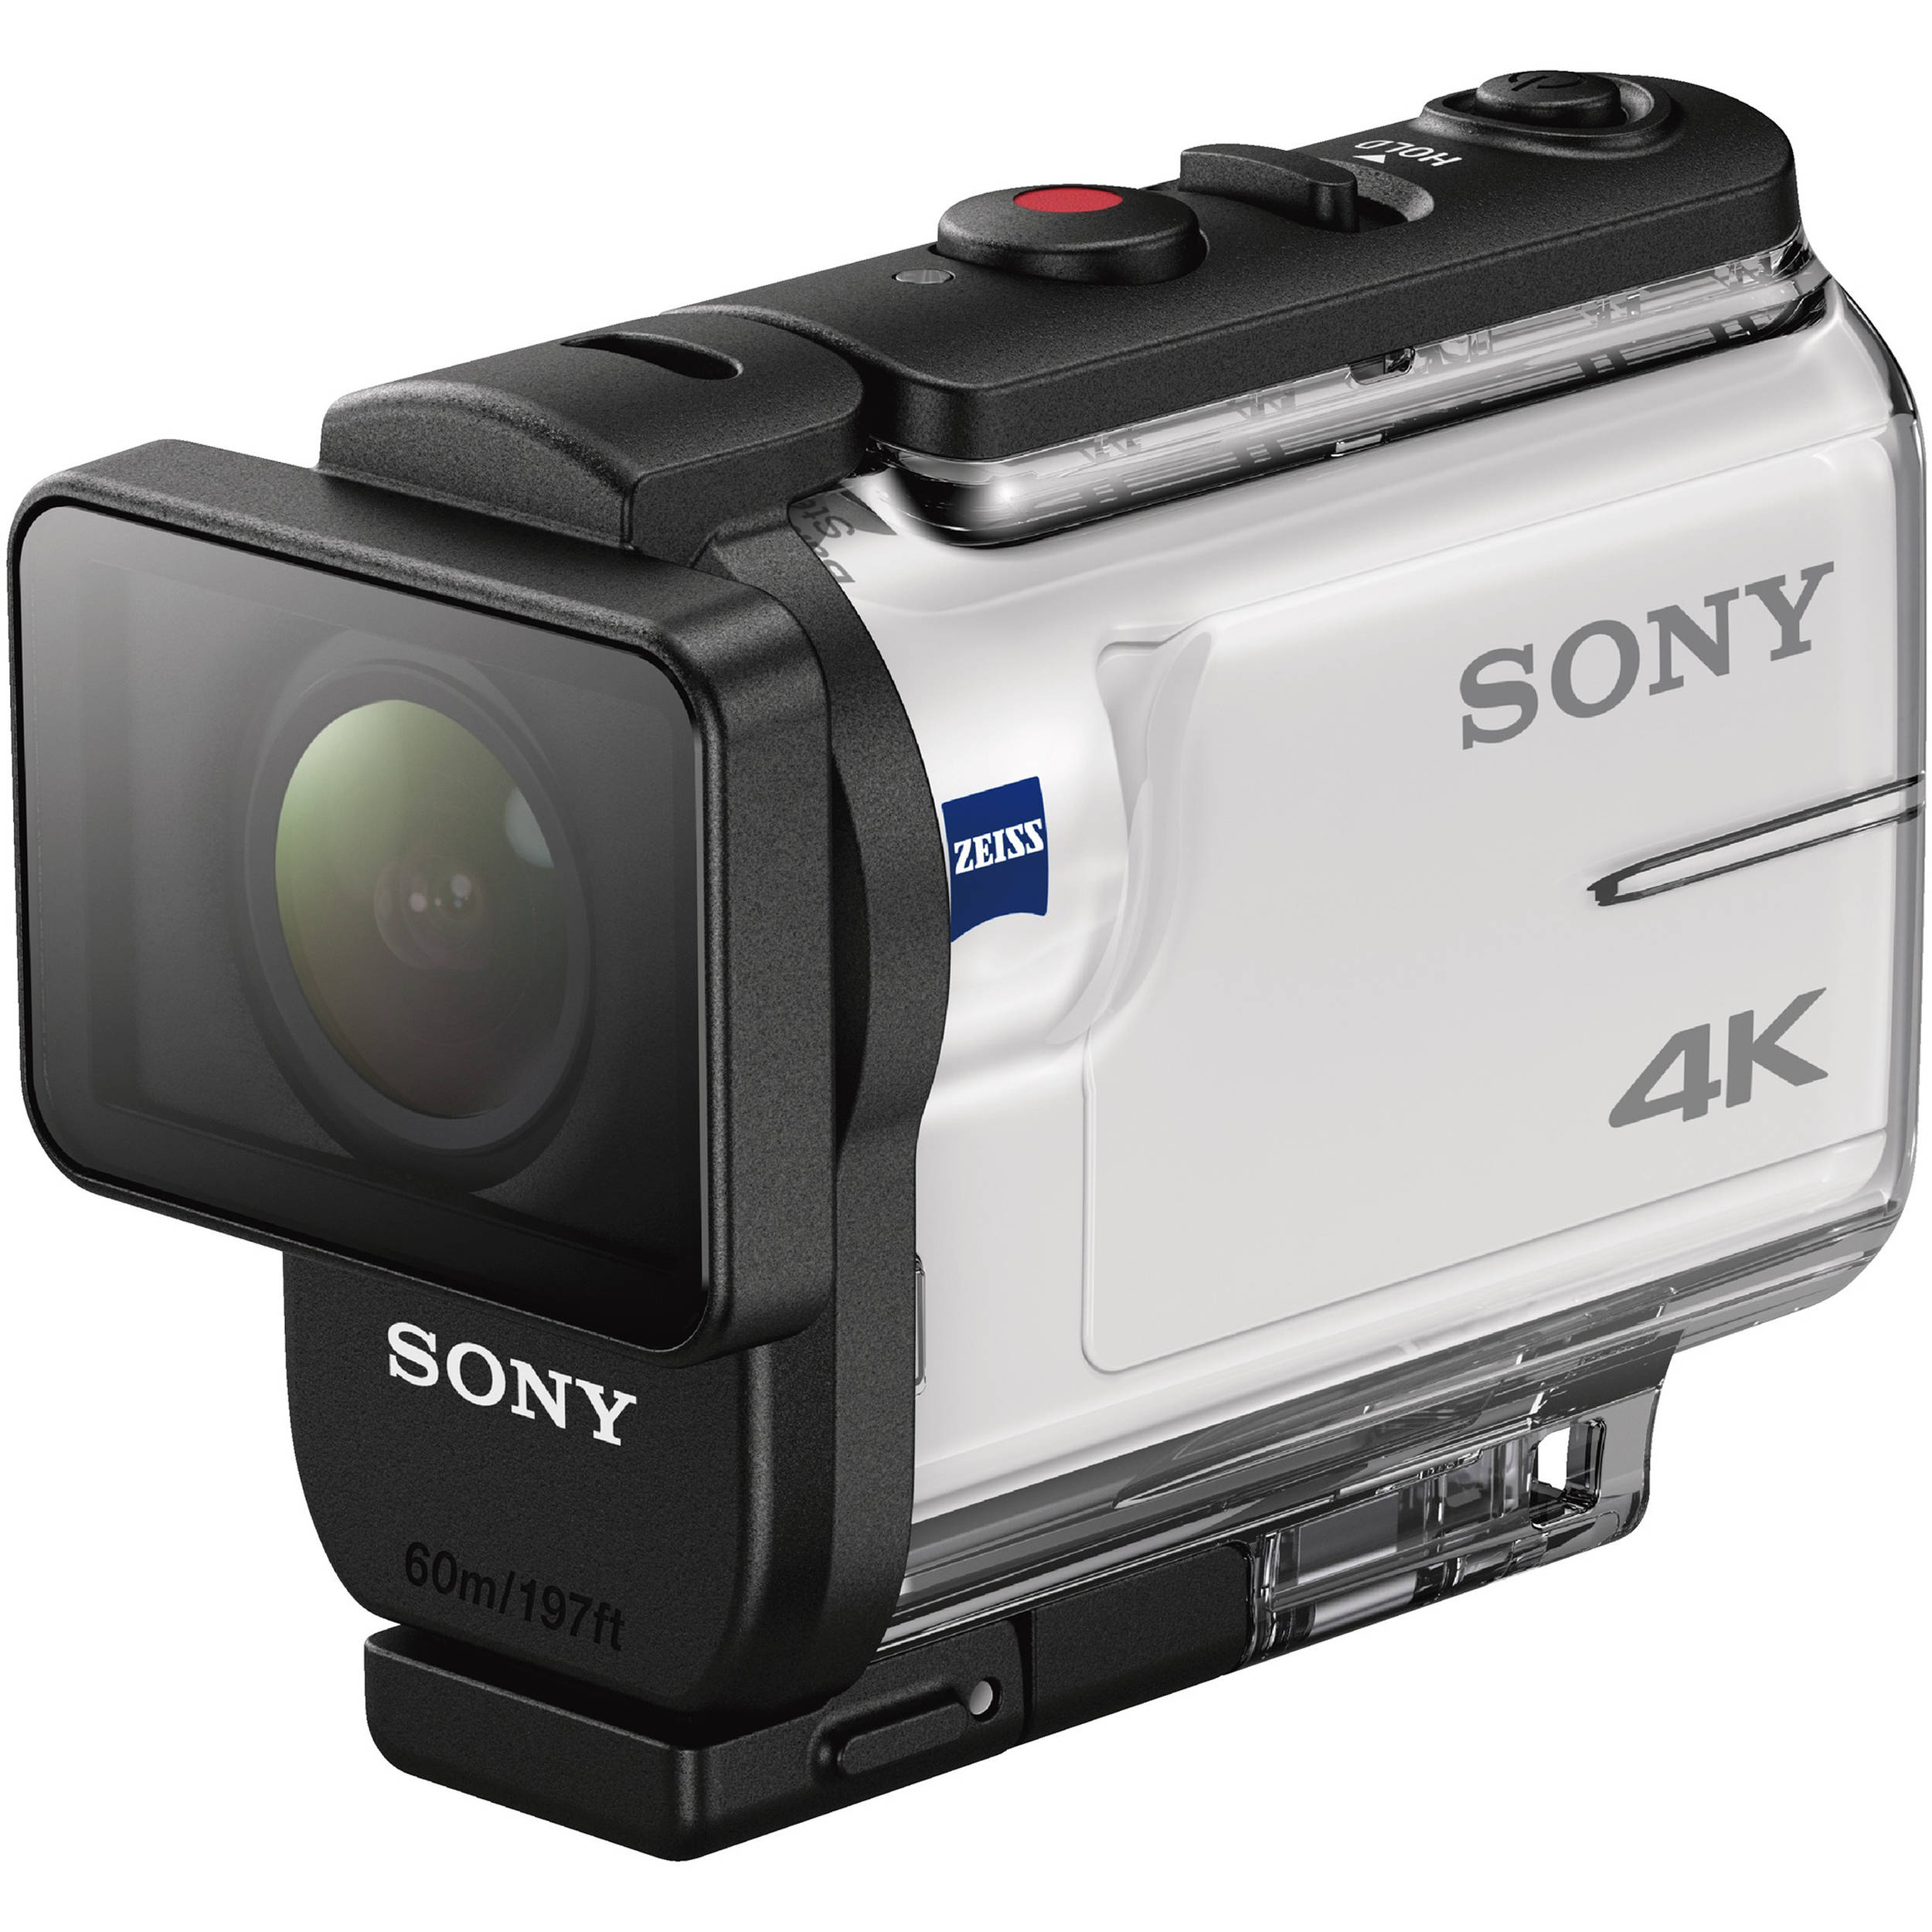 Sony FDRX3000 Paintball Action Camera Review